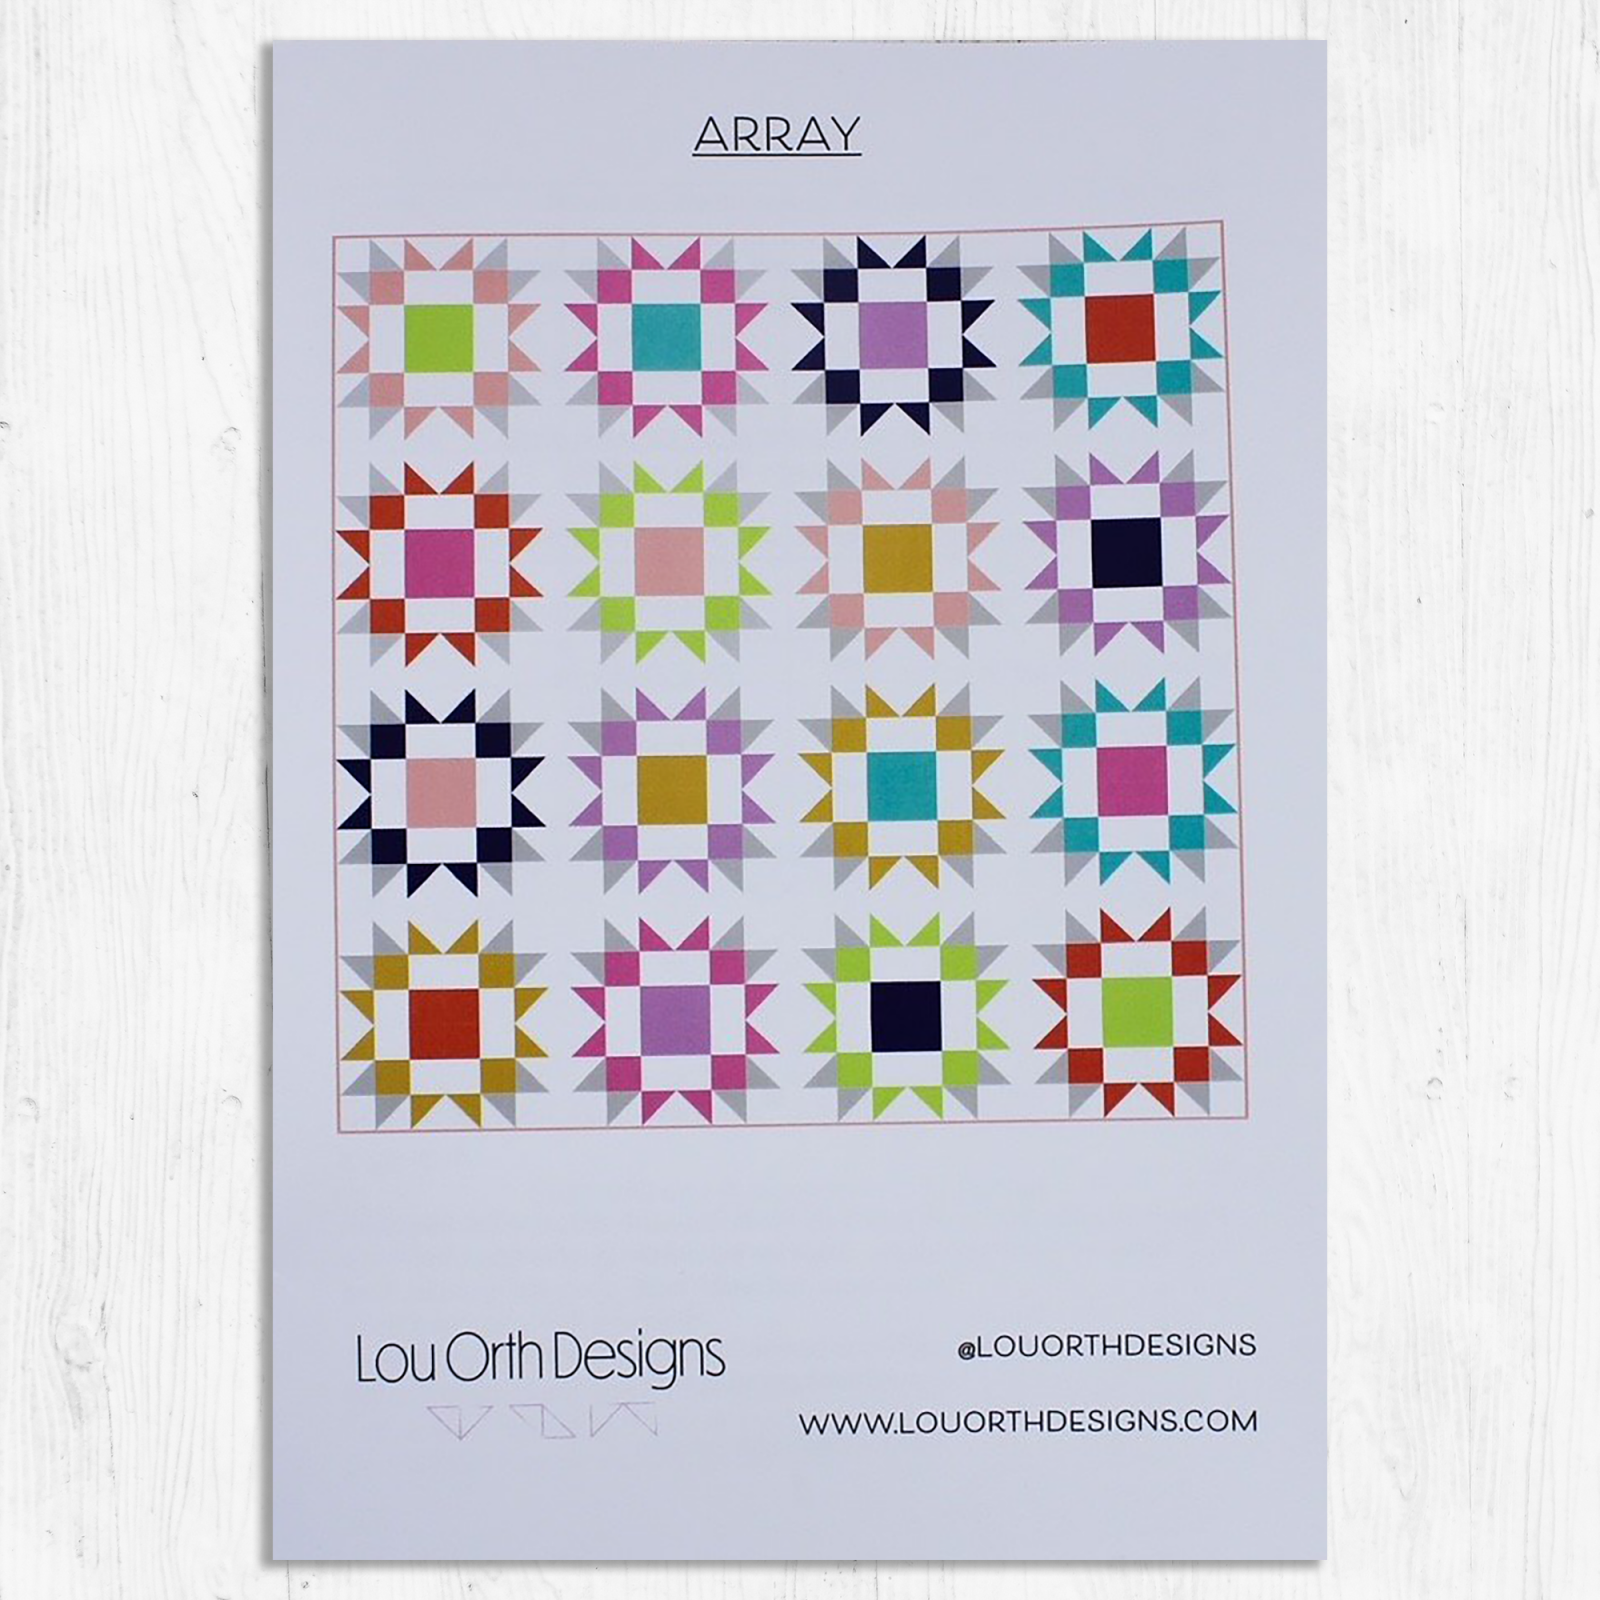 Lou Orth Designs - Array Quilt Pattern